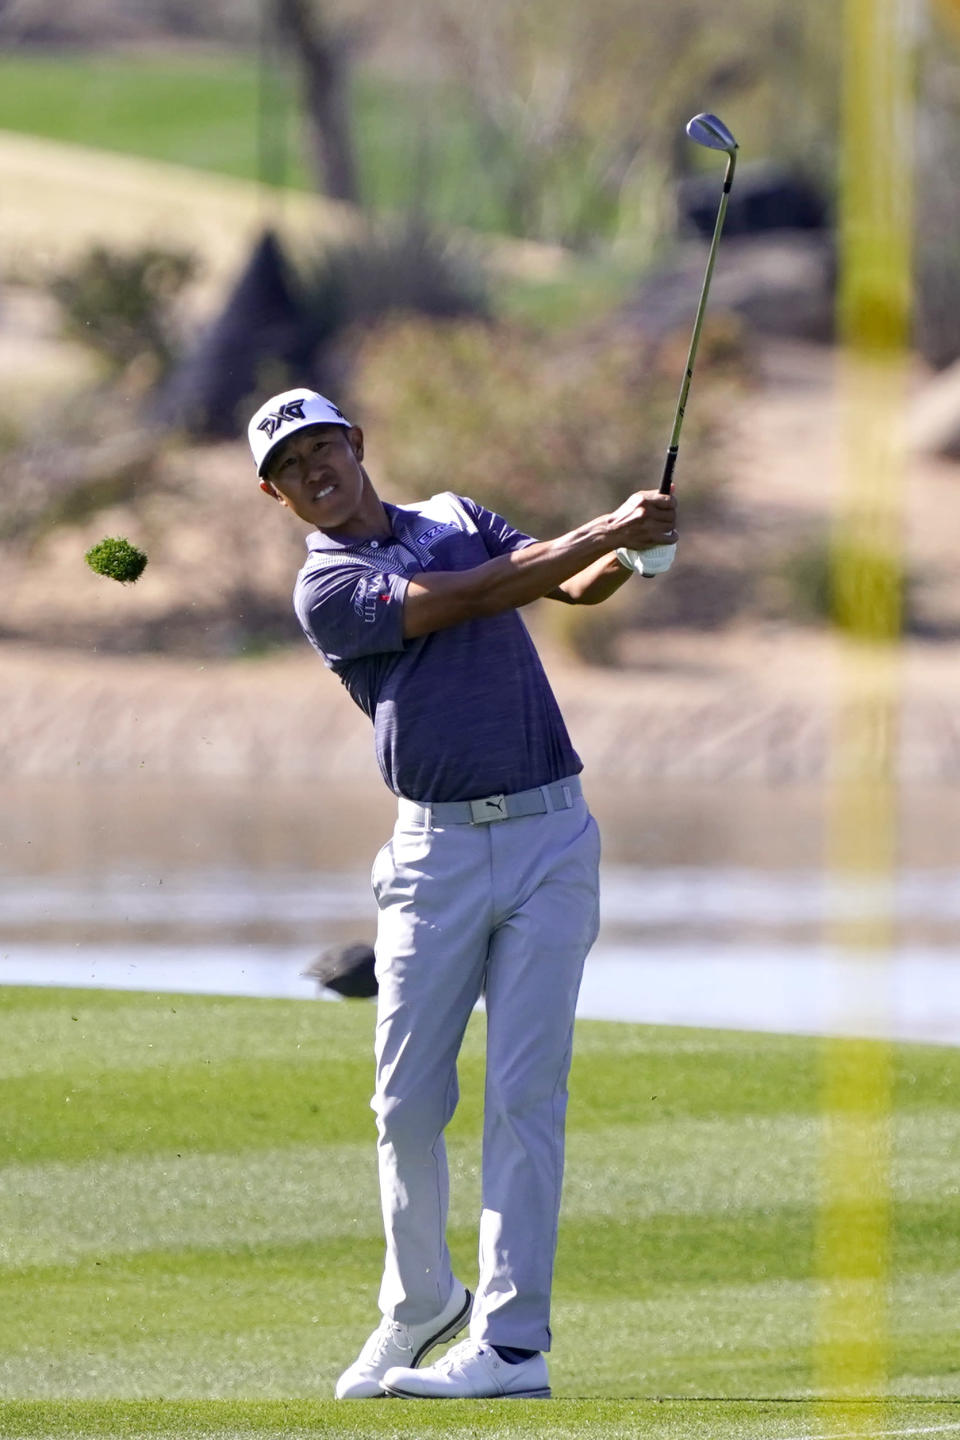 James Hahn hits his approach shot on the 15th hole during the final round of a PGA golf tournament on Sunday, Feb. 7, 2021, in Scottsdale, Ariz. (AP Photo/Rick Scuteri)